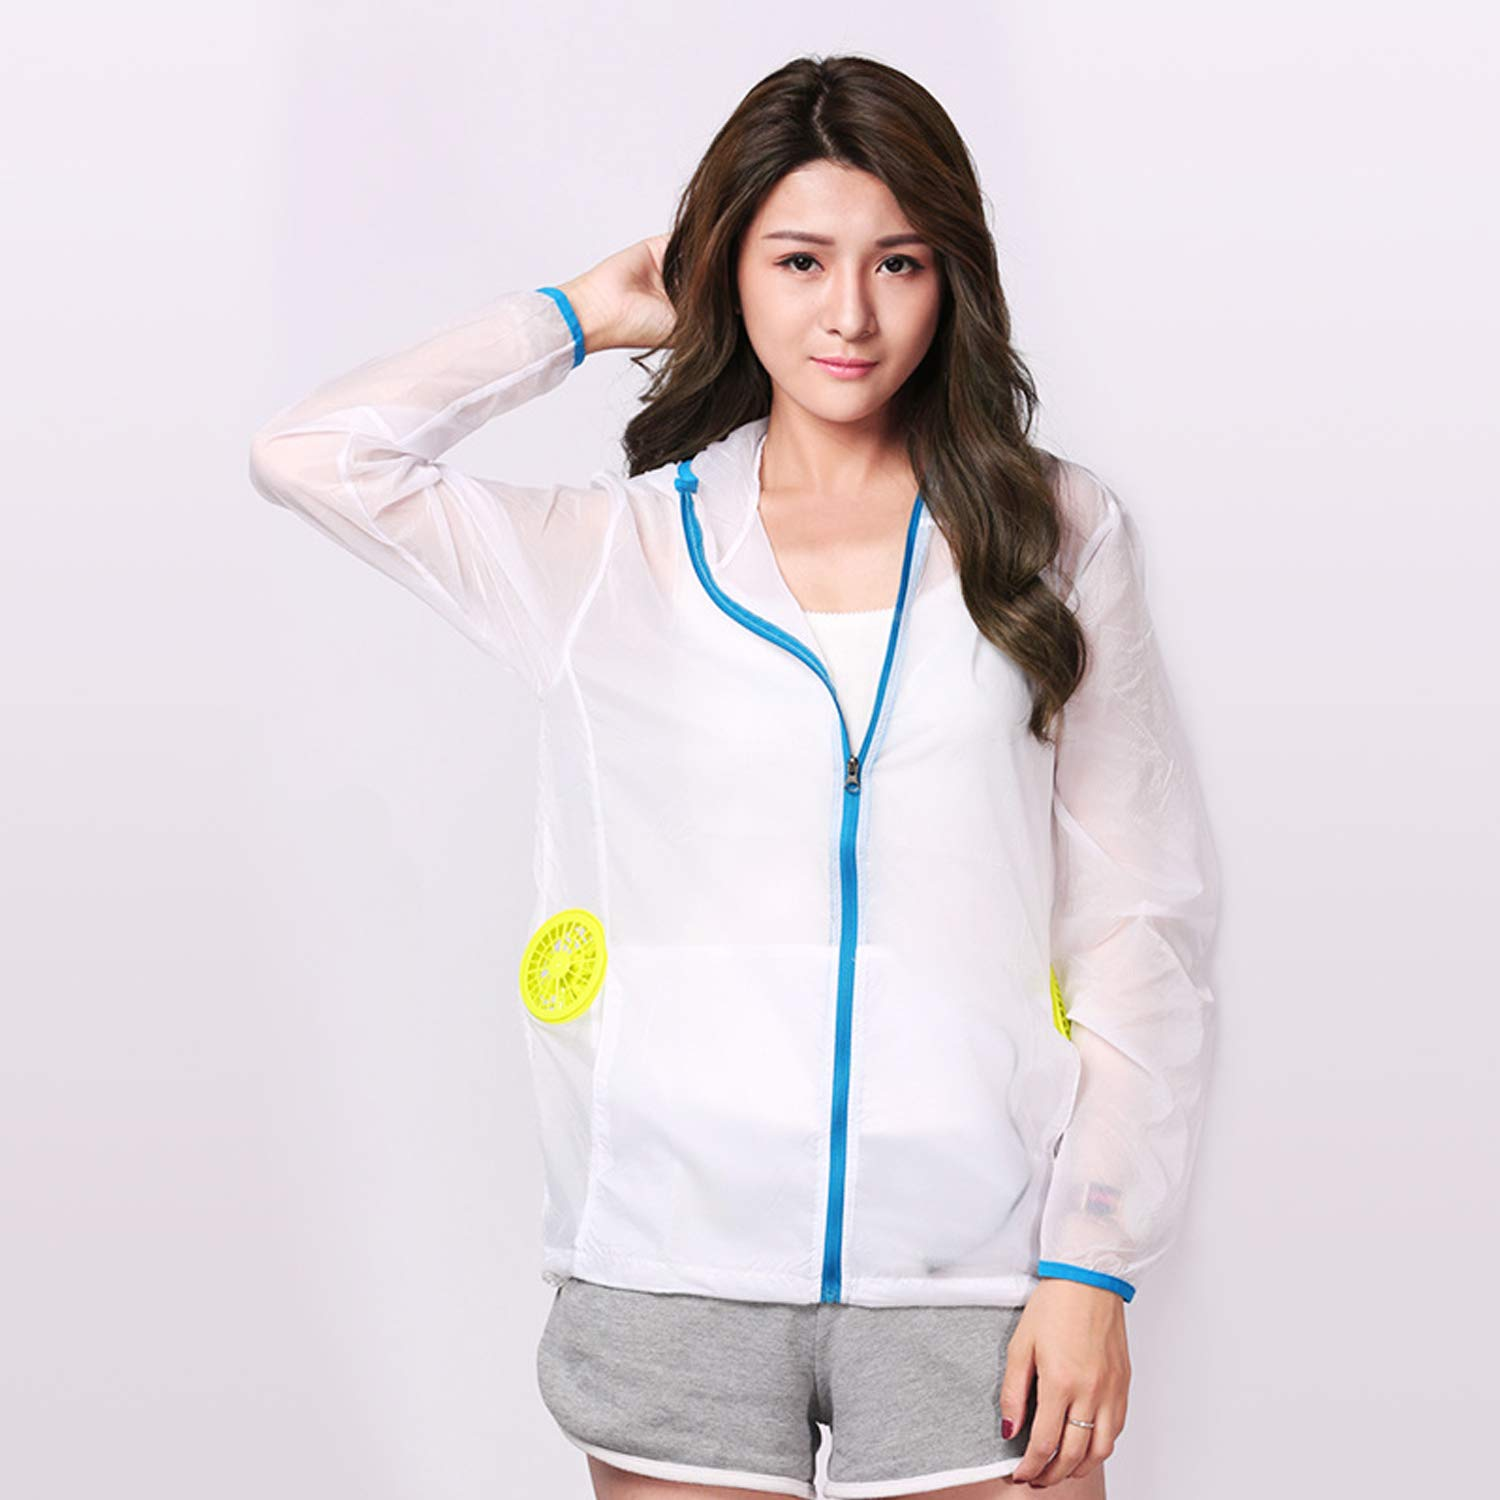 Bearhoho Summer Air Conditioning Suit USB Fan Jacket Quick-Drying Sunscreen Clothes for Outdoor Activities (White, S)